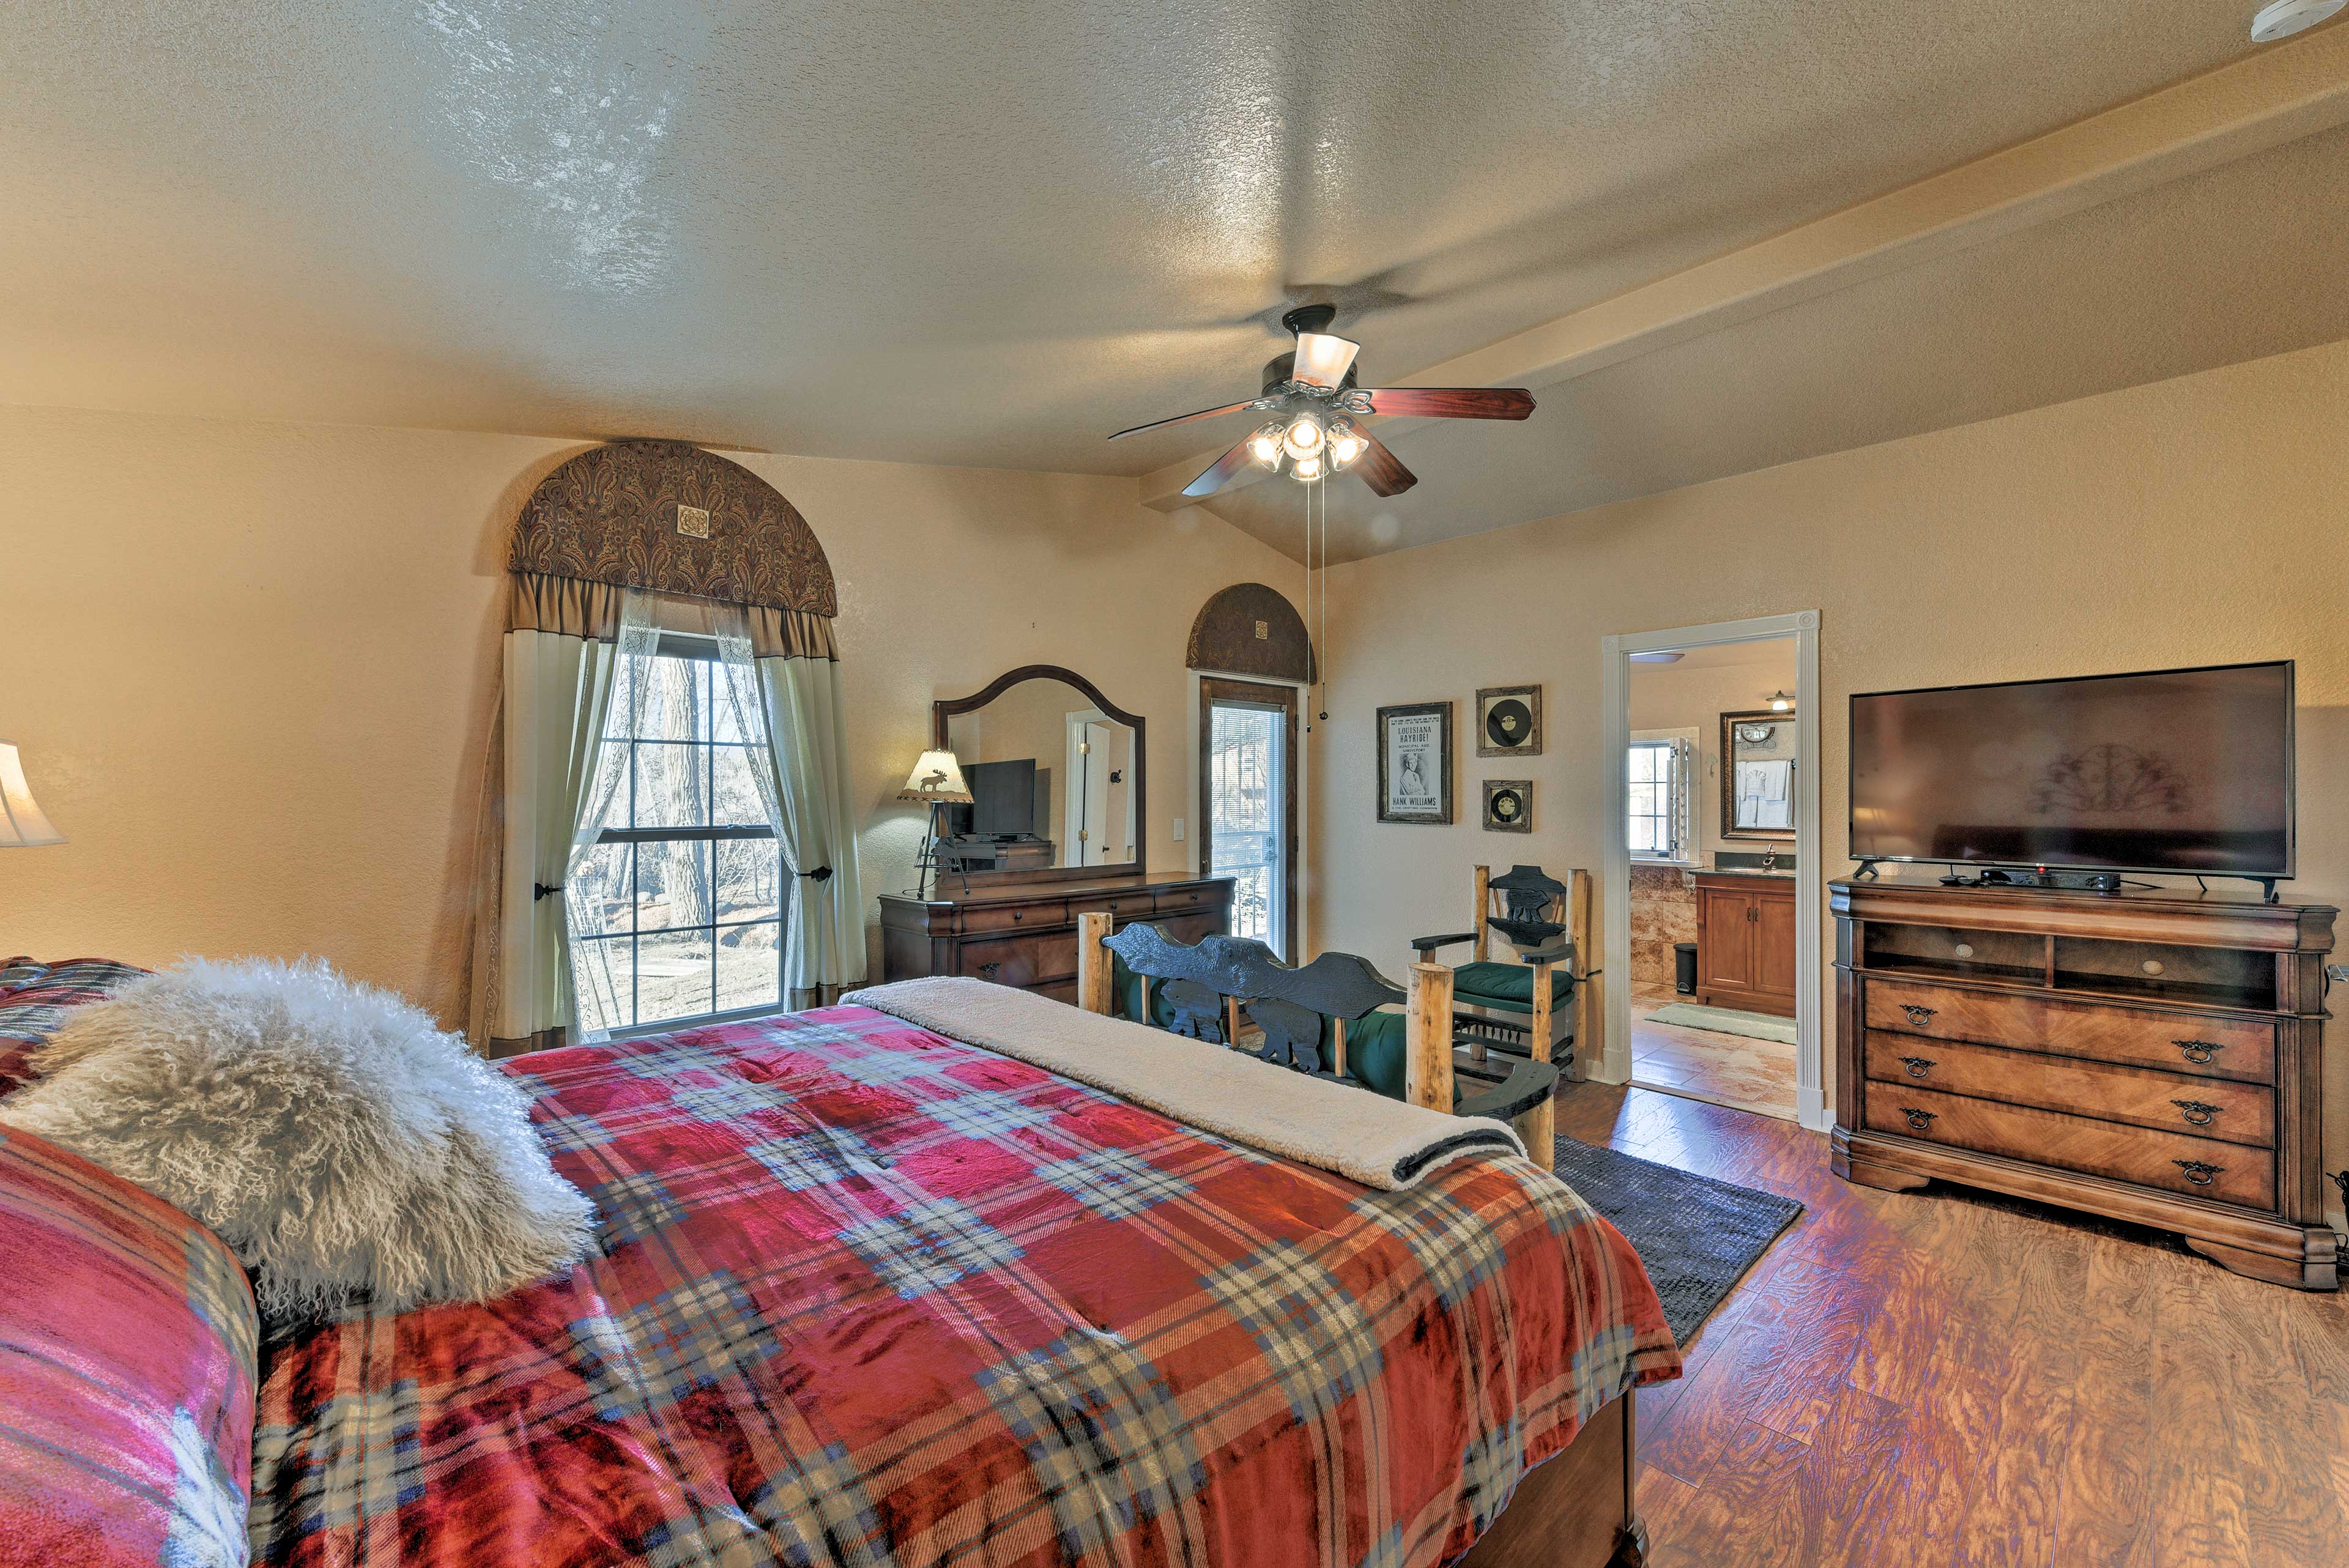 Snuggle under the covers of this king bed & turn on the flat-screen cable TV.